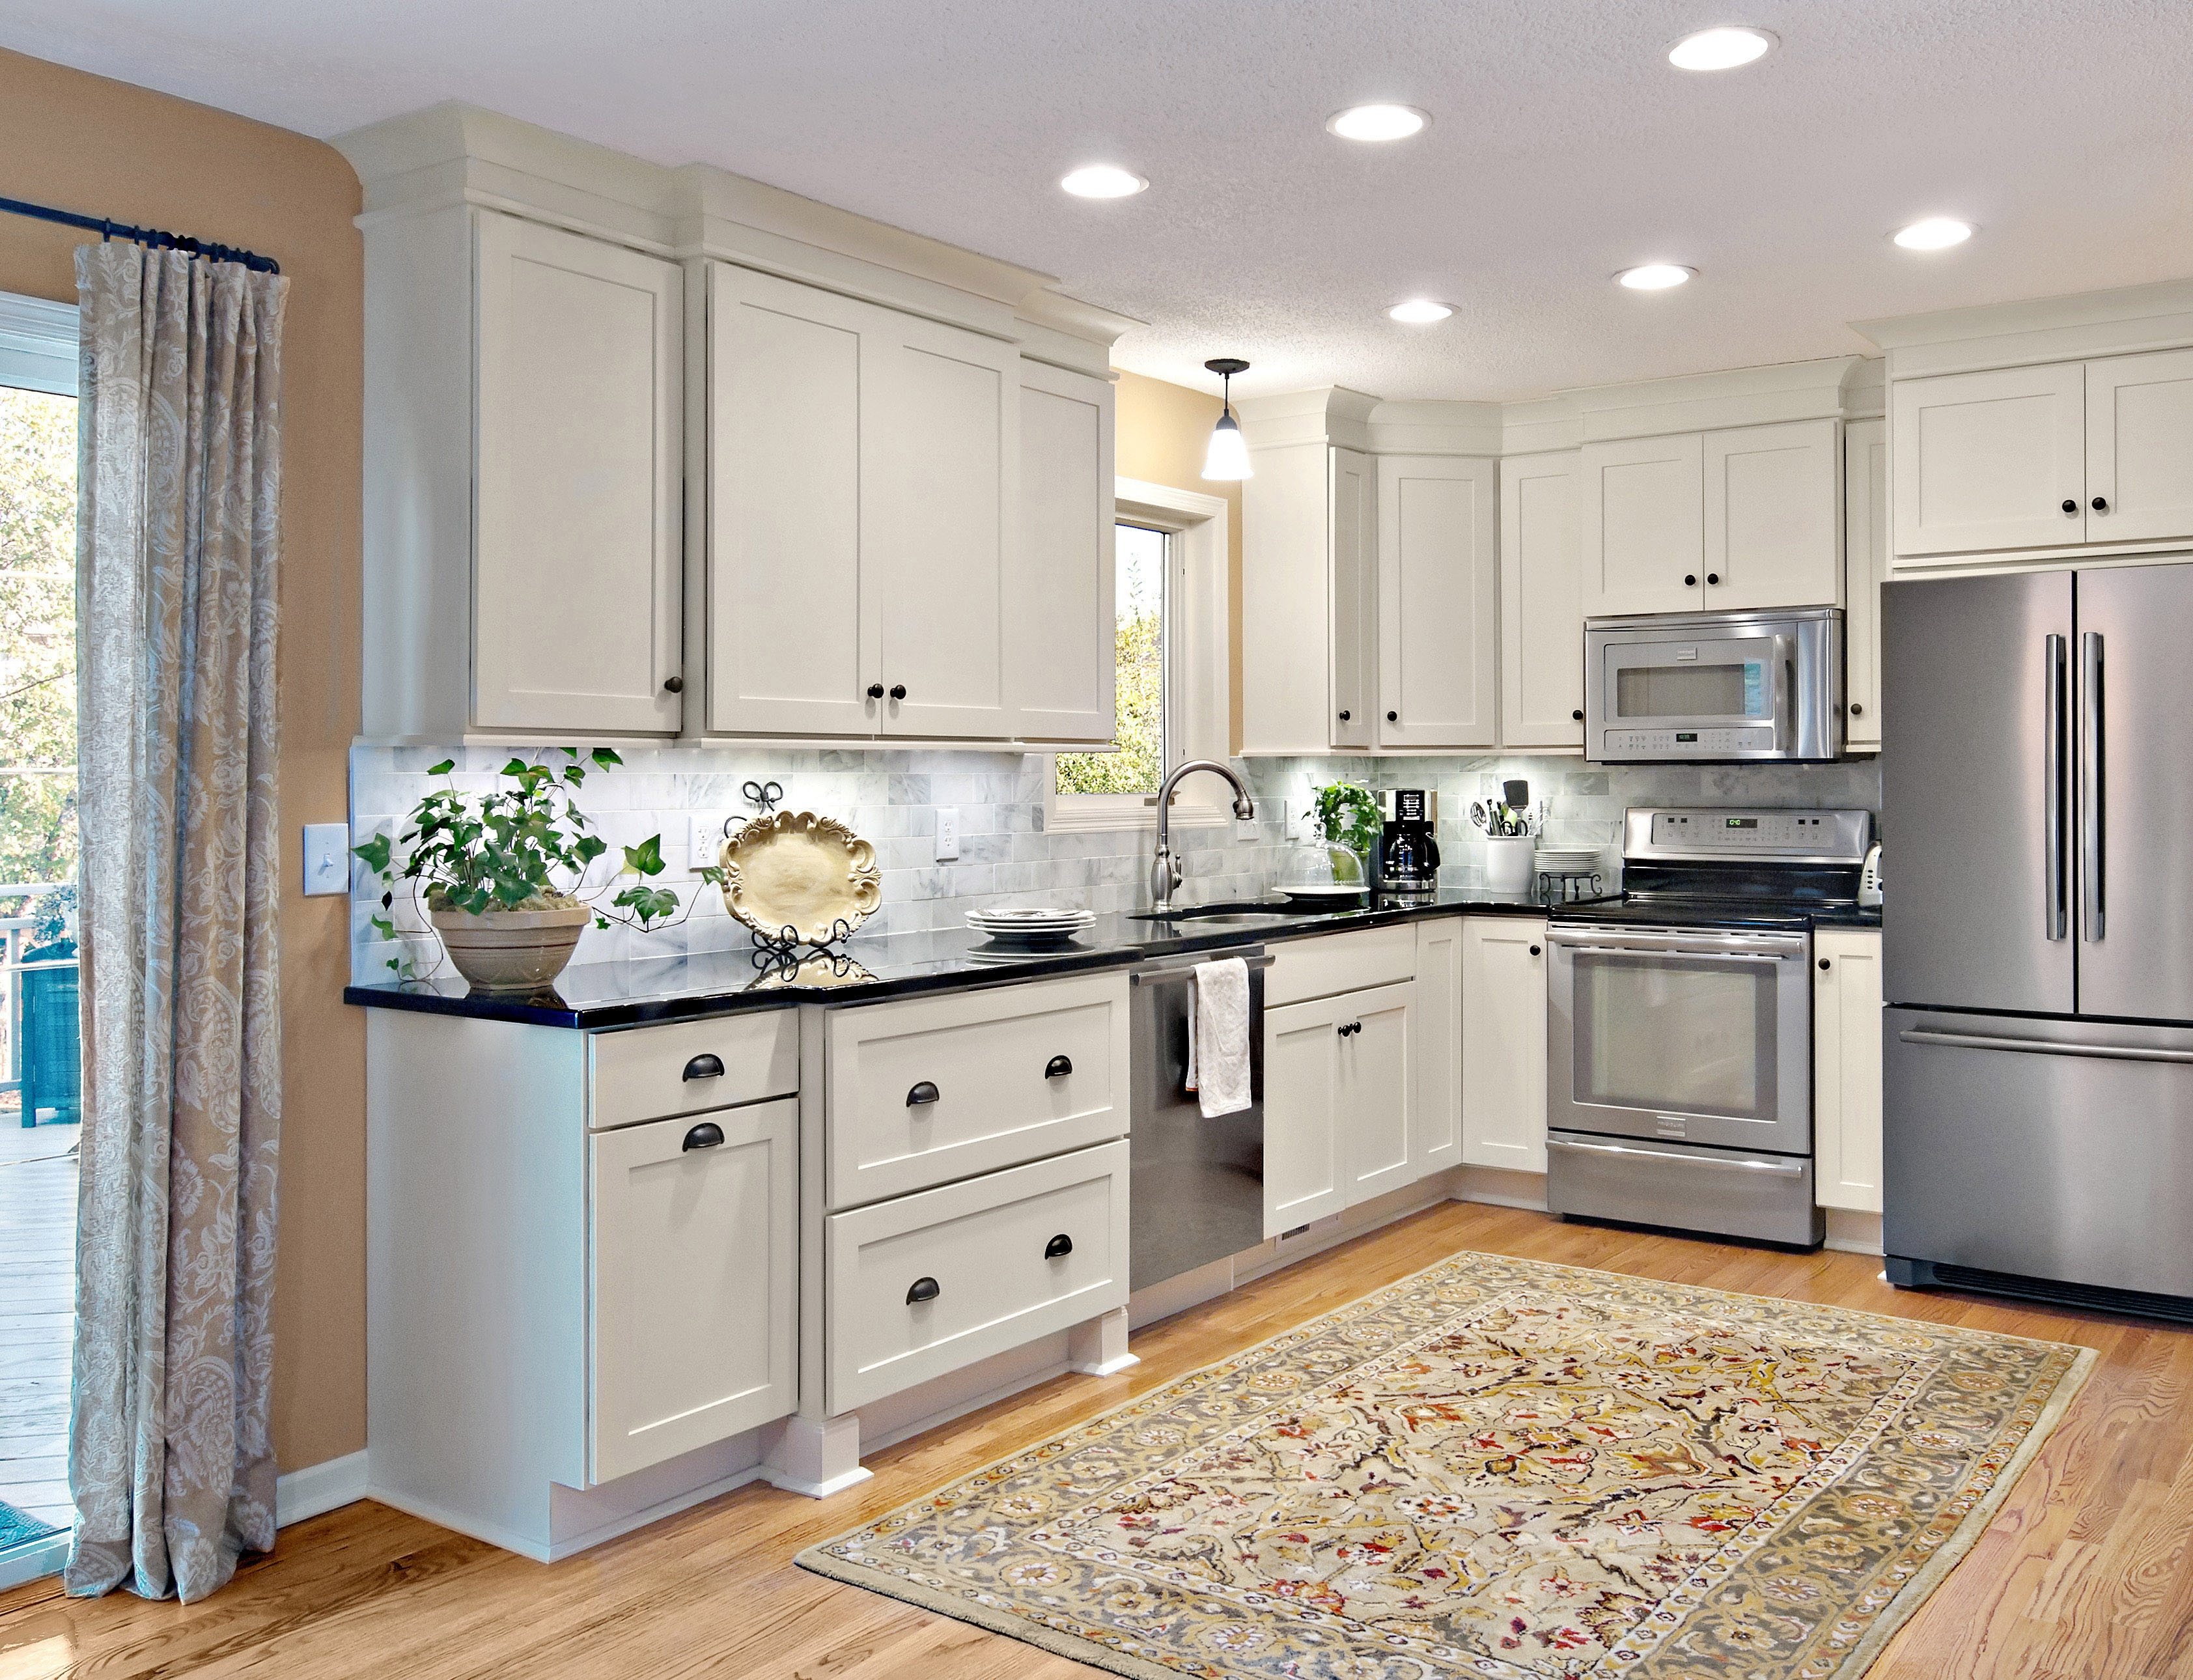 White Kitchen Cabinets With Feet